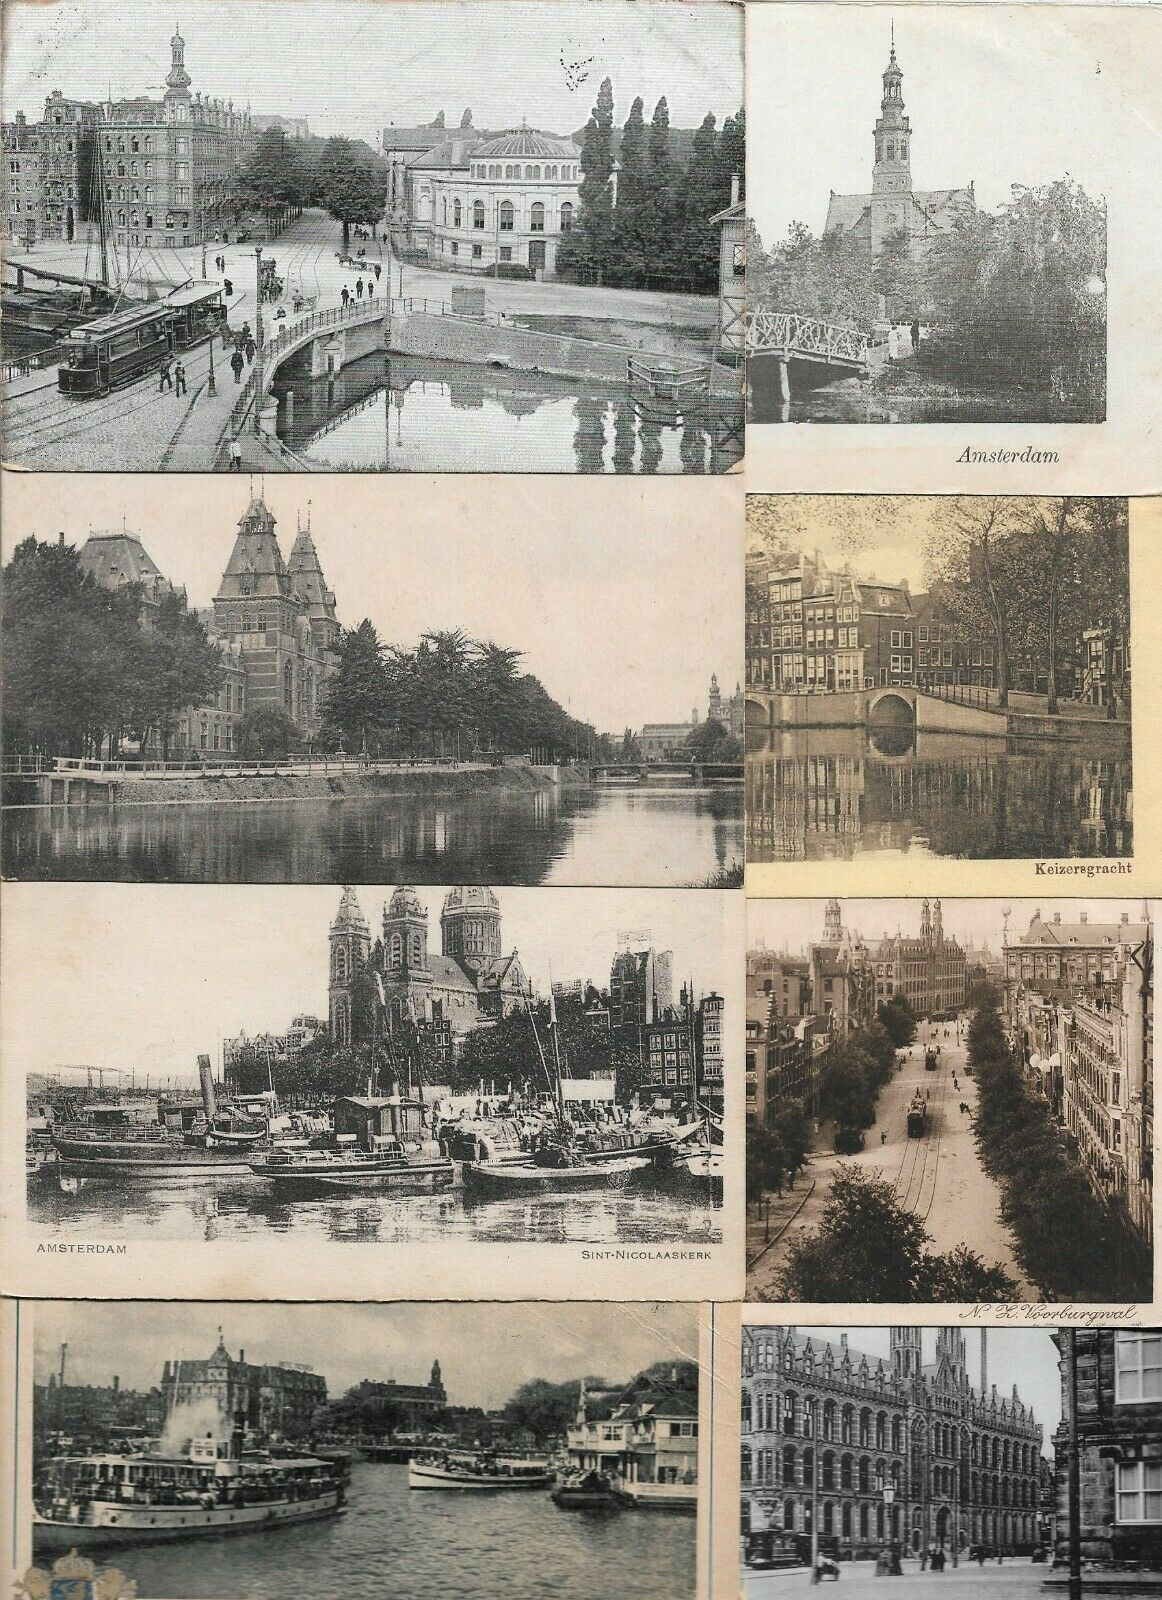 Netherlands Amsterdam Postcard Lot of 30 01.10 Без бренда